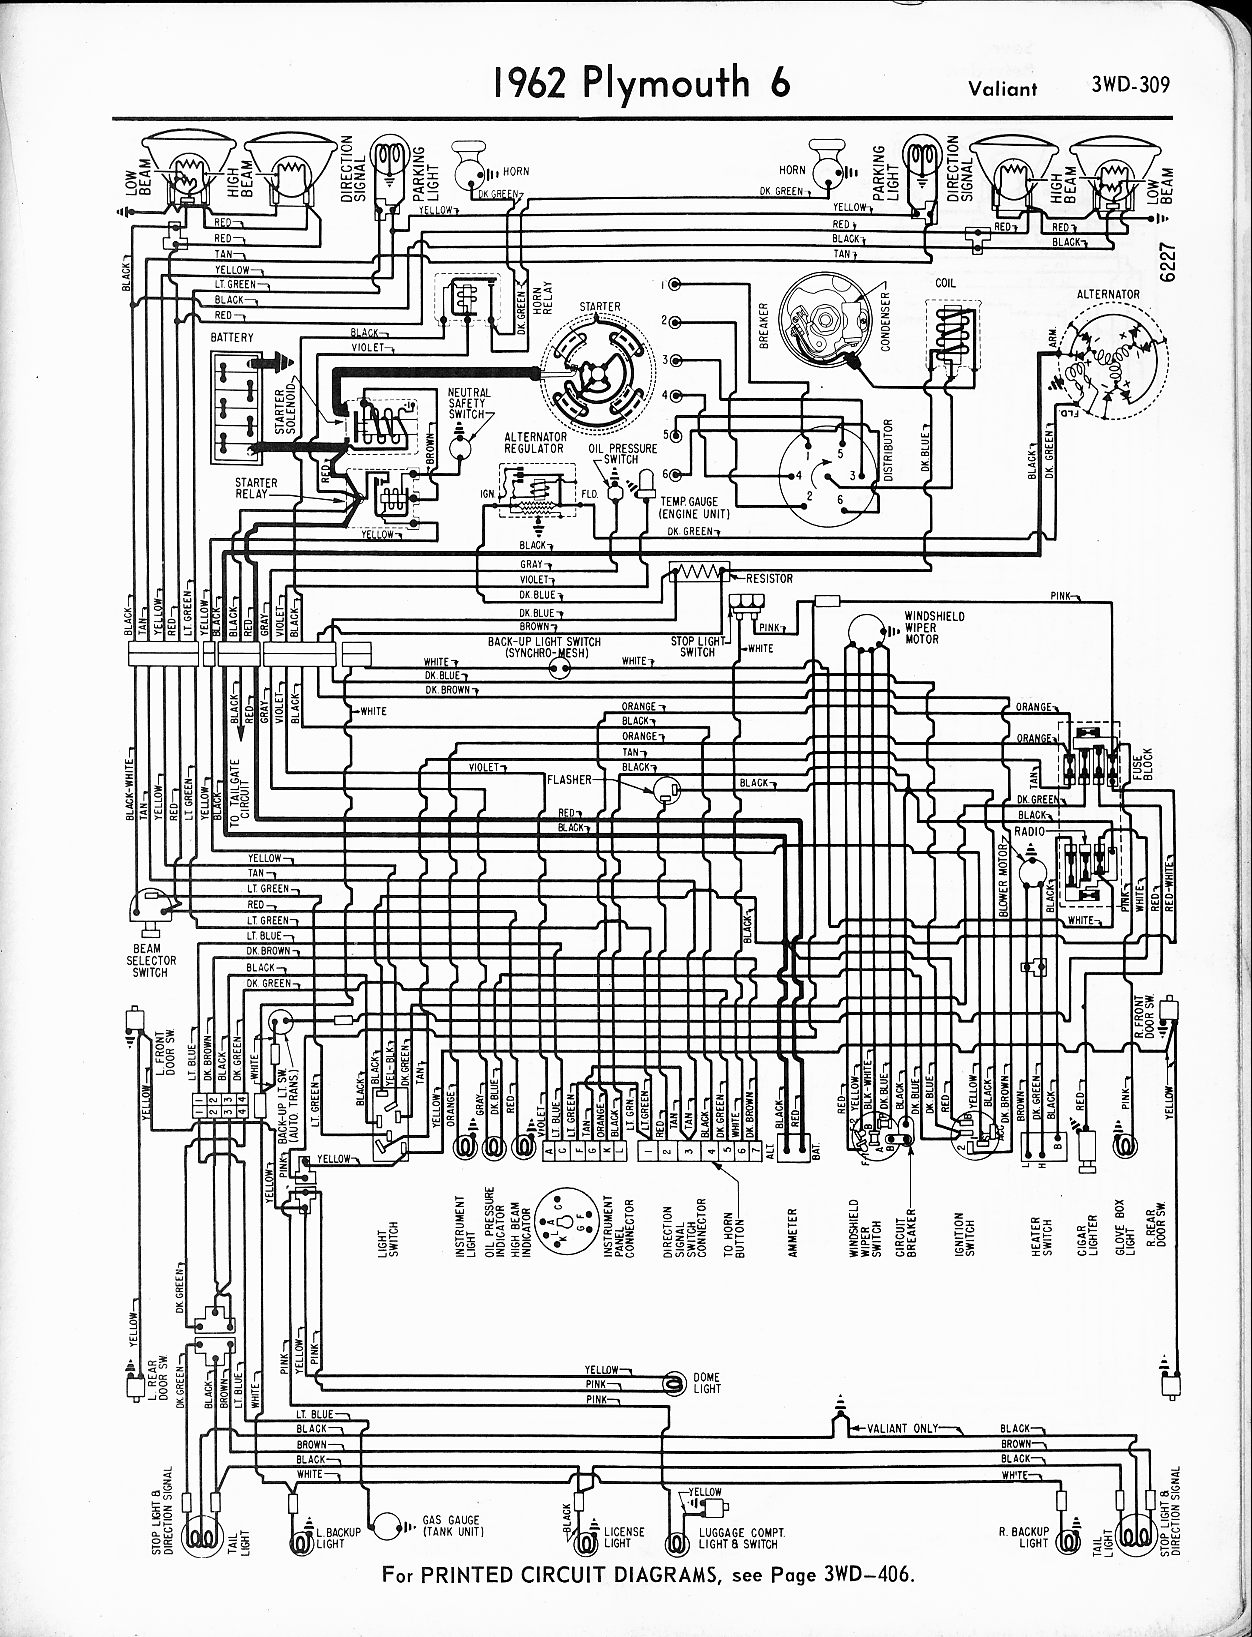 1973 Plymouth Wiring Diagram Free For You Duster Get Image About 74 Cuda Mopar Alternator